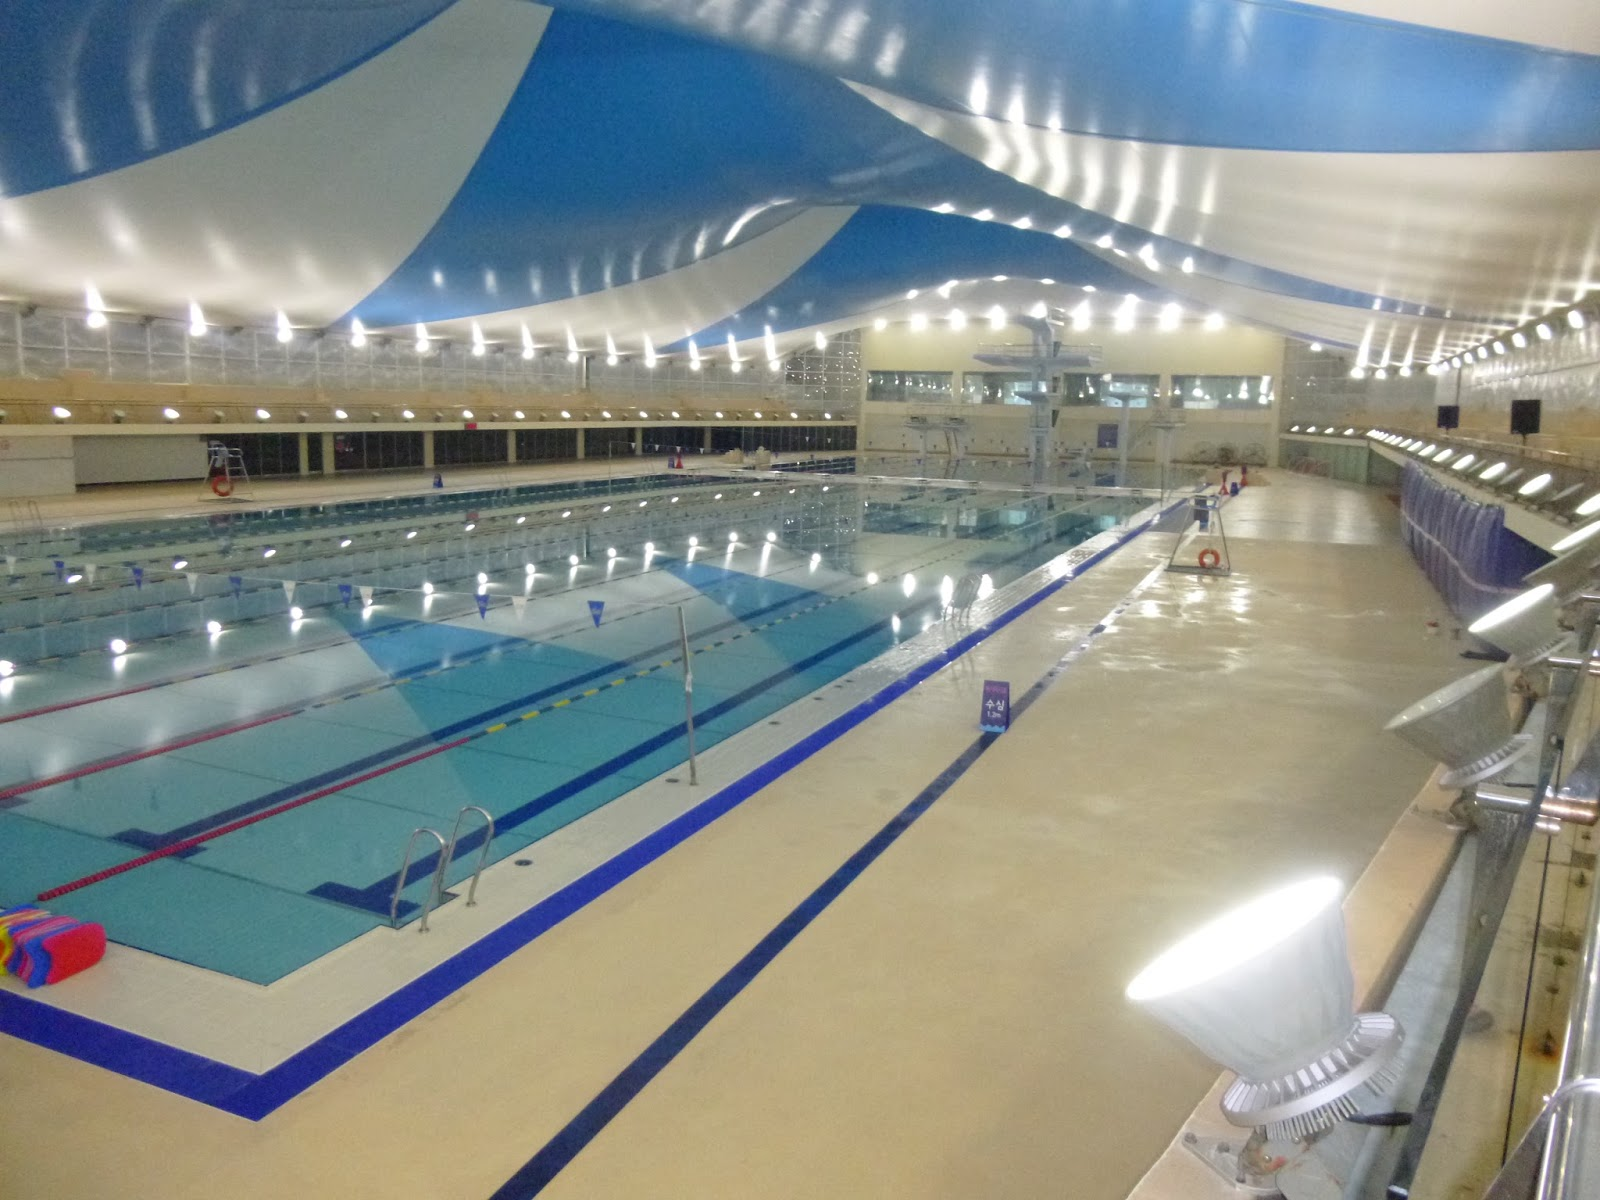 1988 seoul olympic games pool - Olympic Swimming Pool 2013